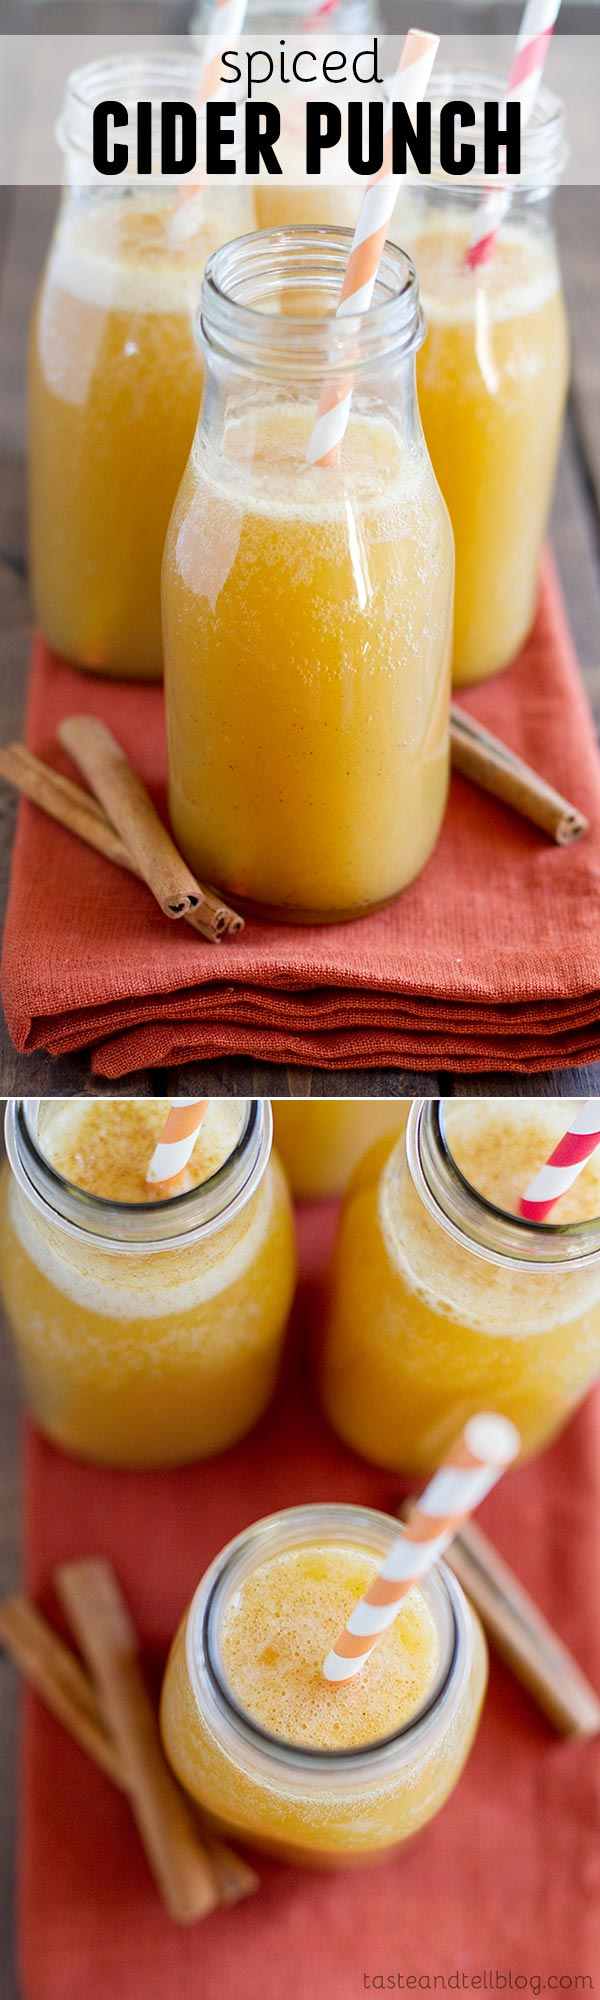 Cider is not always meant to be served warm! This Spiced Cider Punch is filled with lots of citrus flavor and warm spices and served chilled.